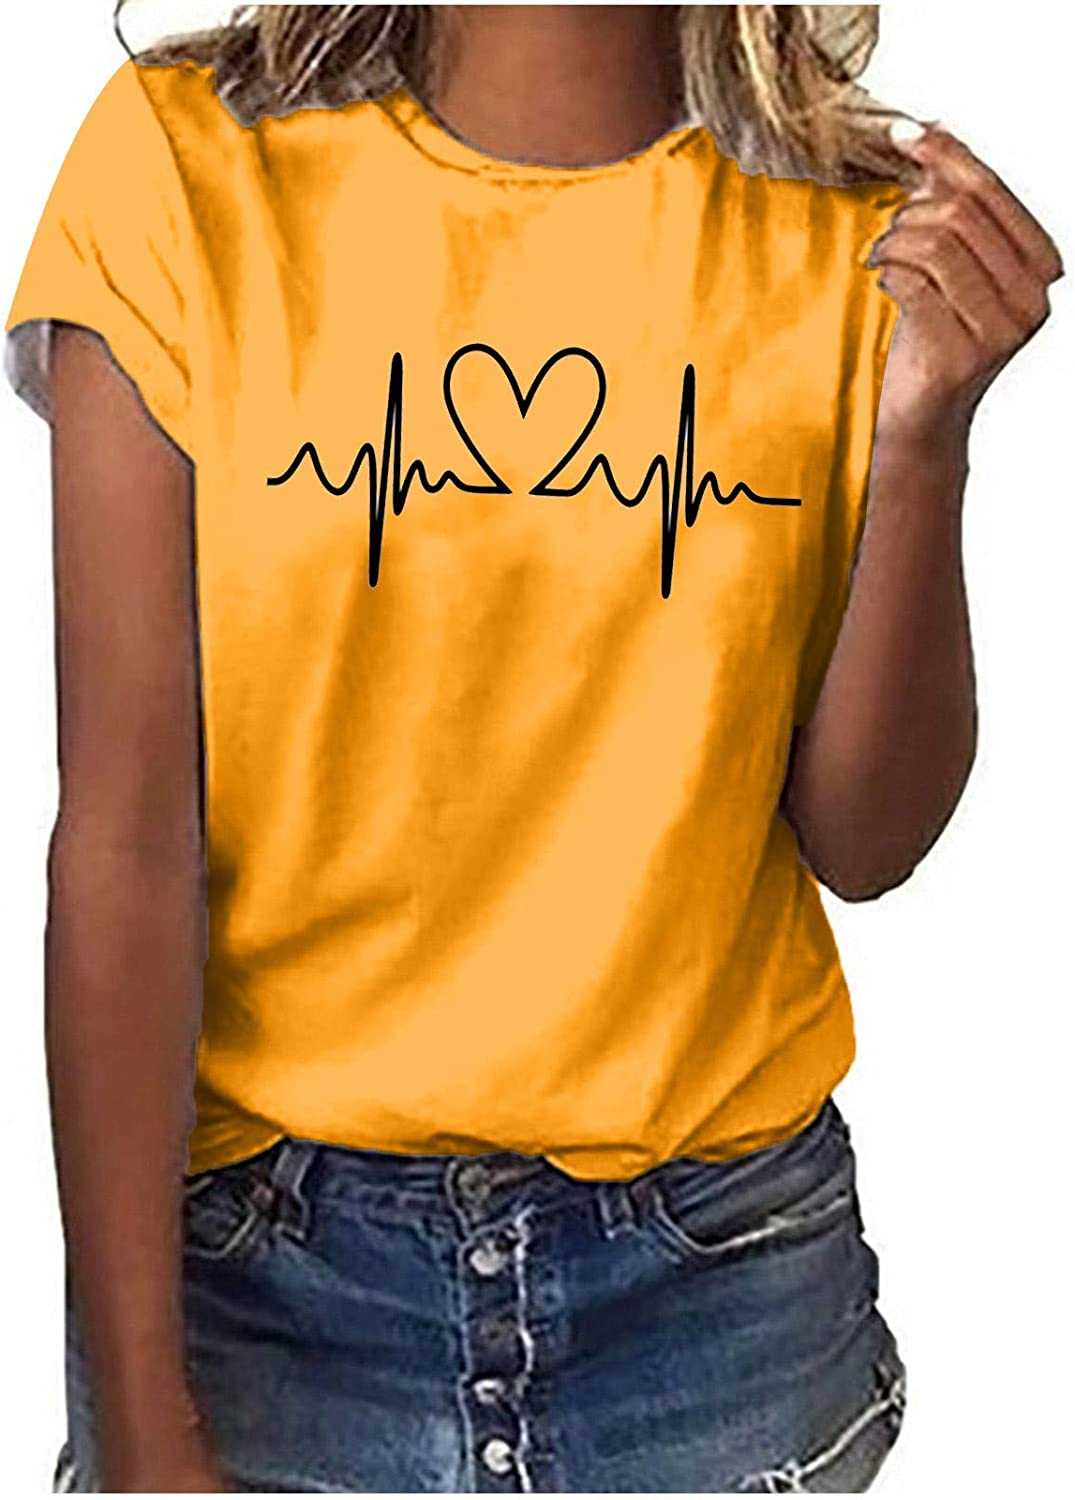 Meichang Crewneck Shirts for Women Short Sleeve Tee Heartbeat Printed Blouse Casual Pullover Tops